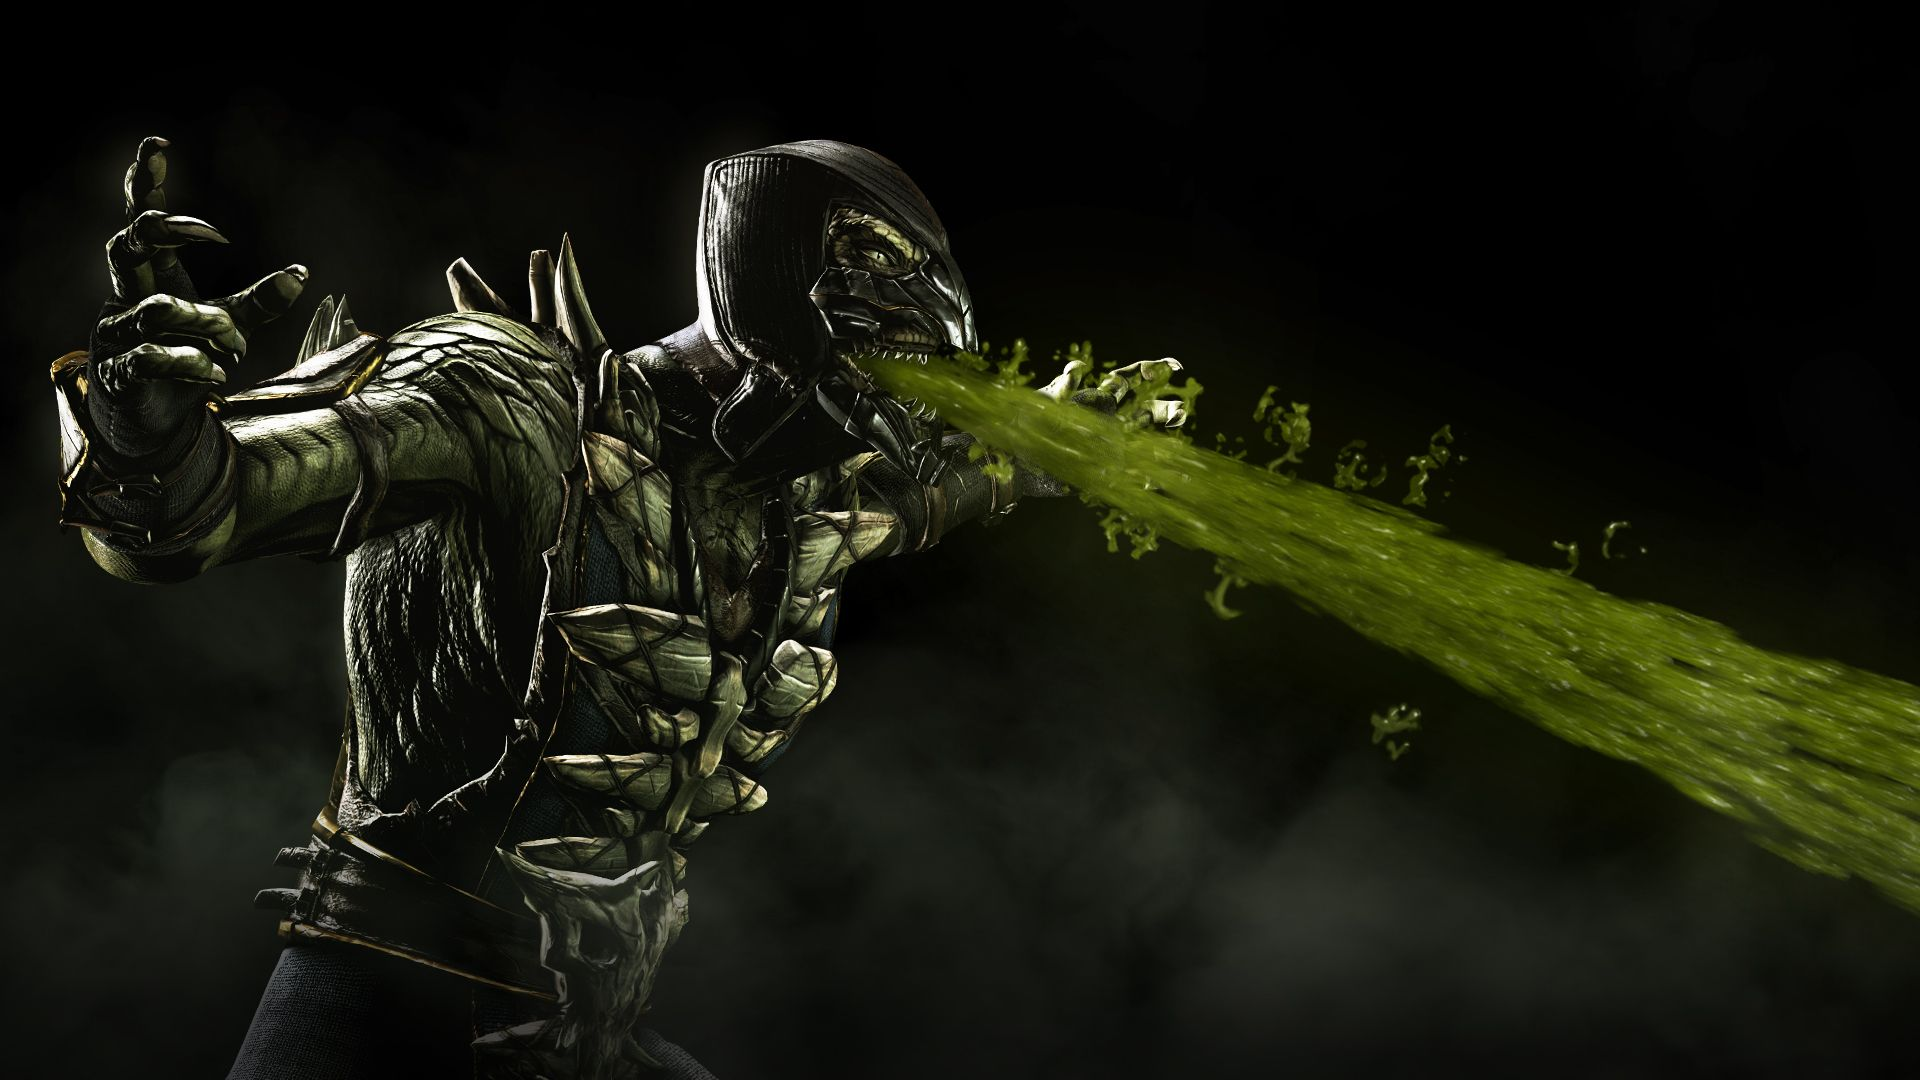 Mortal Kombat Reptile Wallpapers - Top gratis Mortal Kombat Reptile